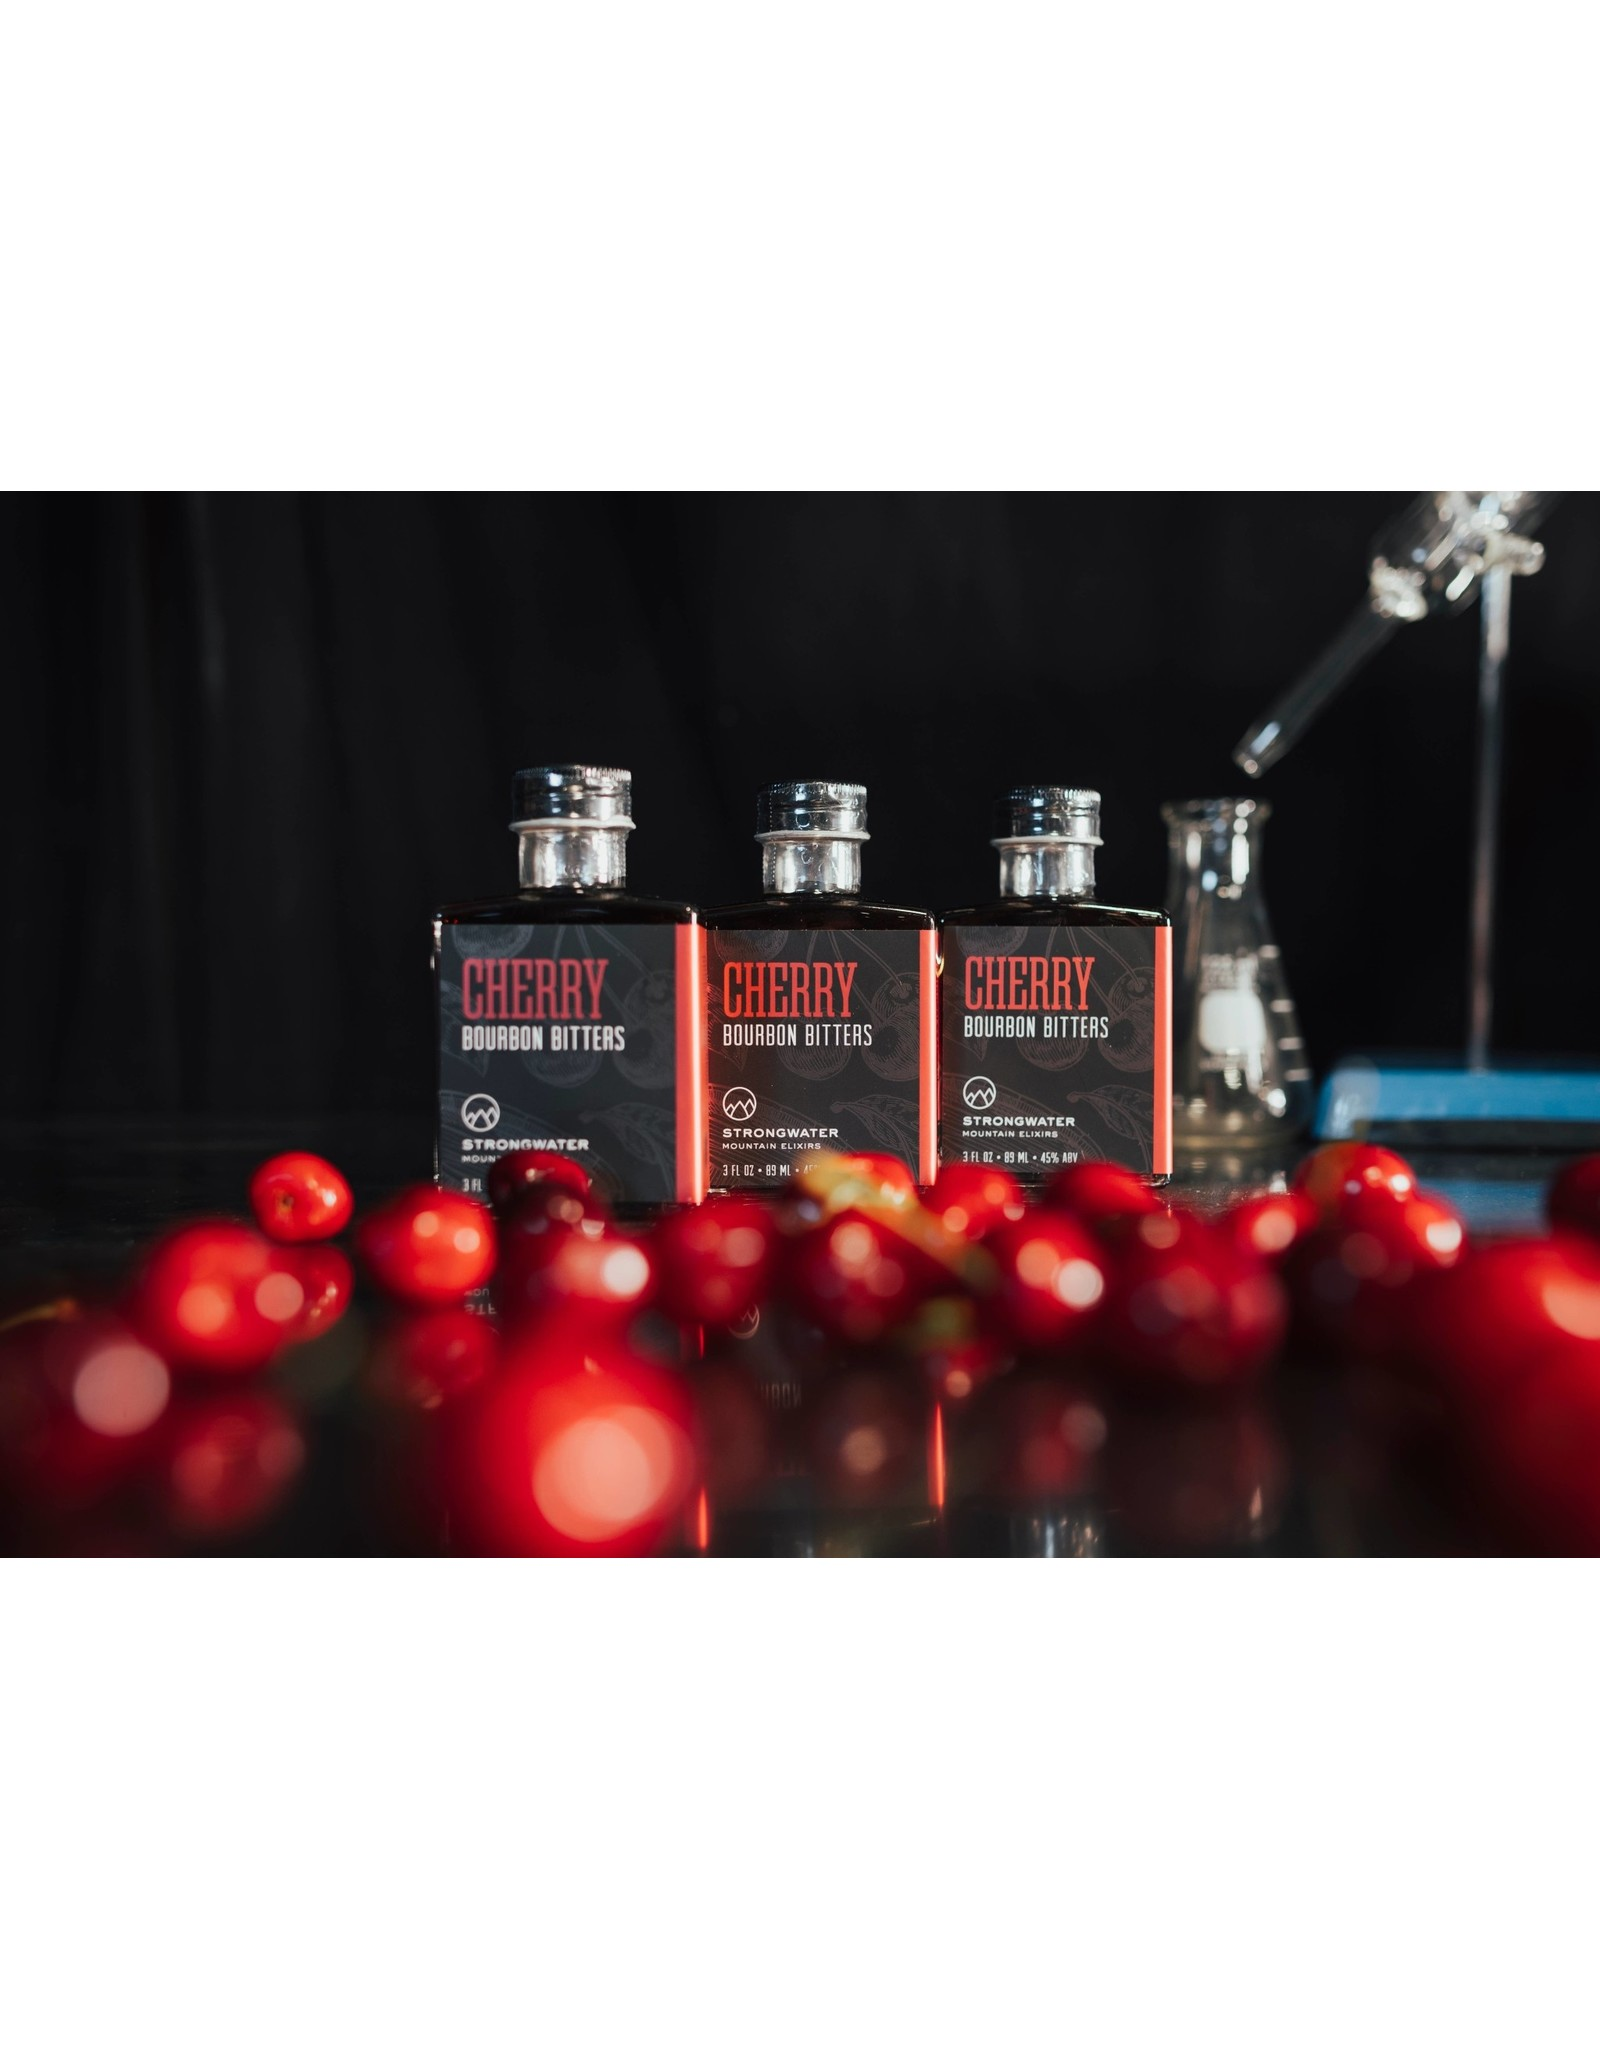 Strongwater Strongwater Cherry Bourbon Bitters